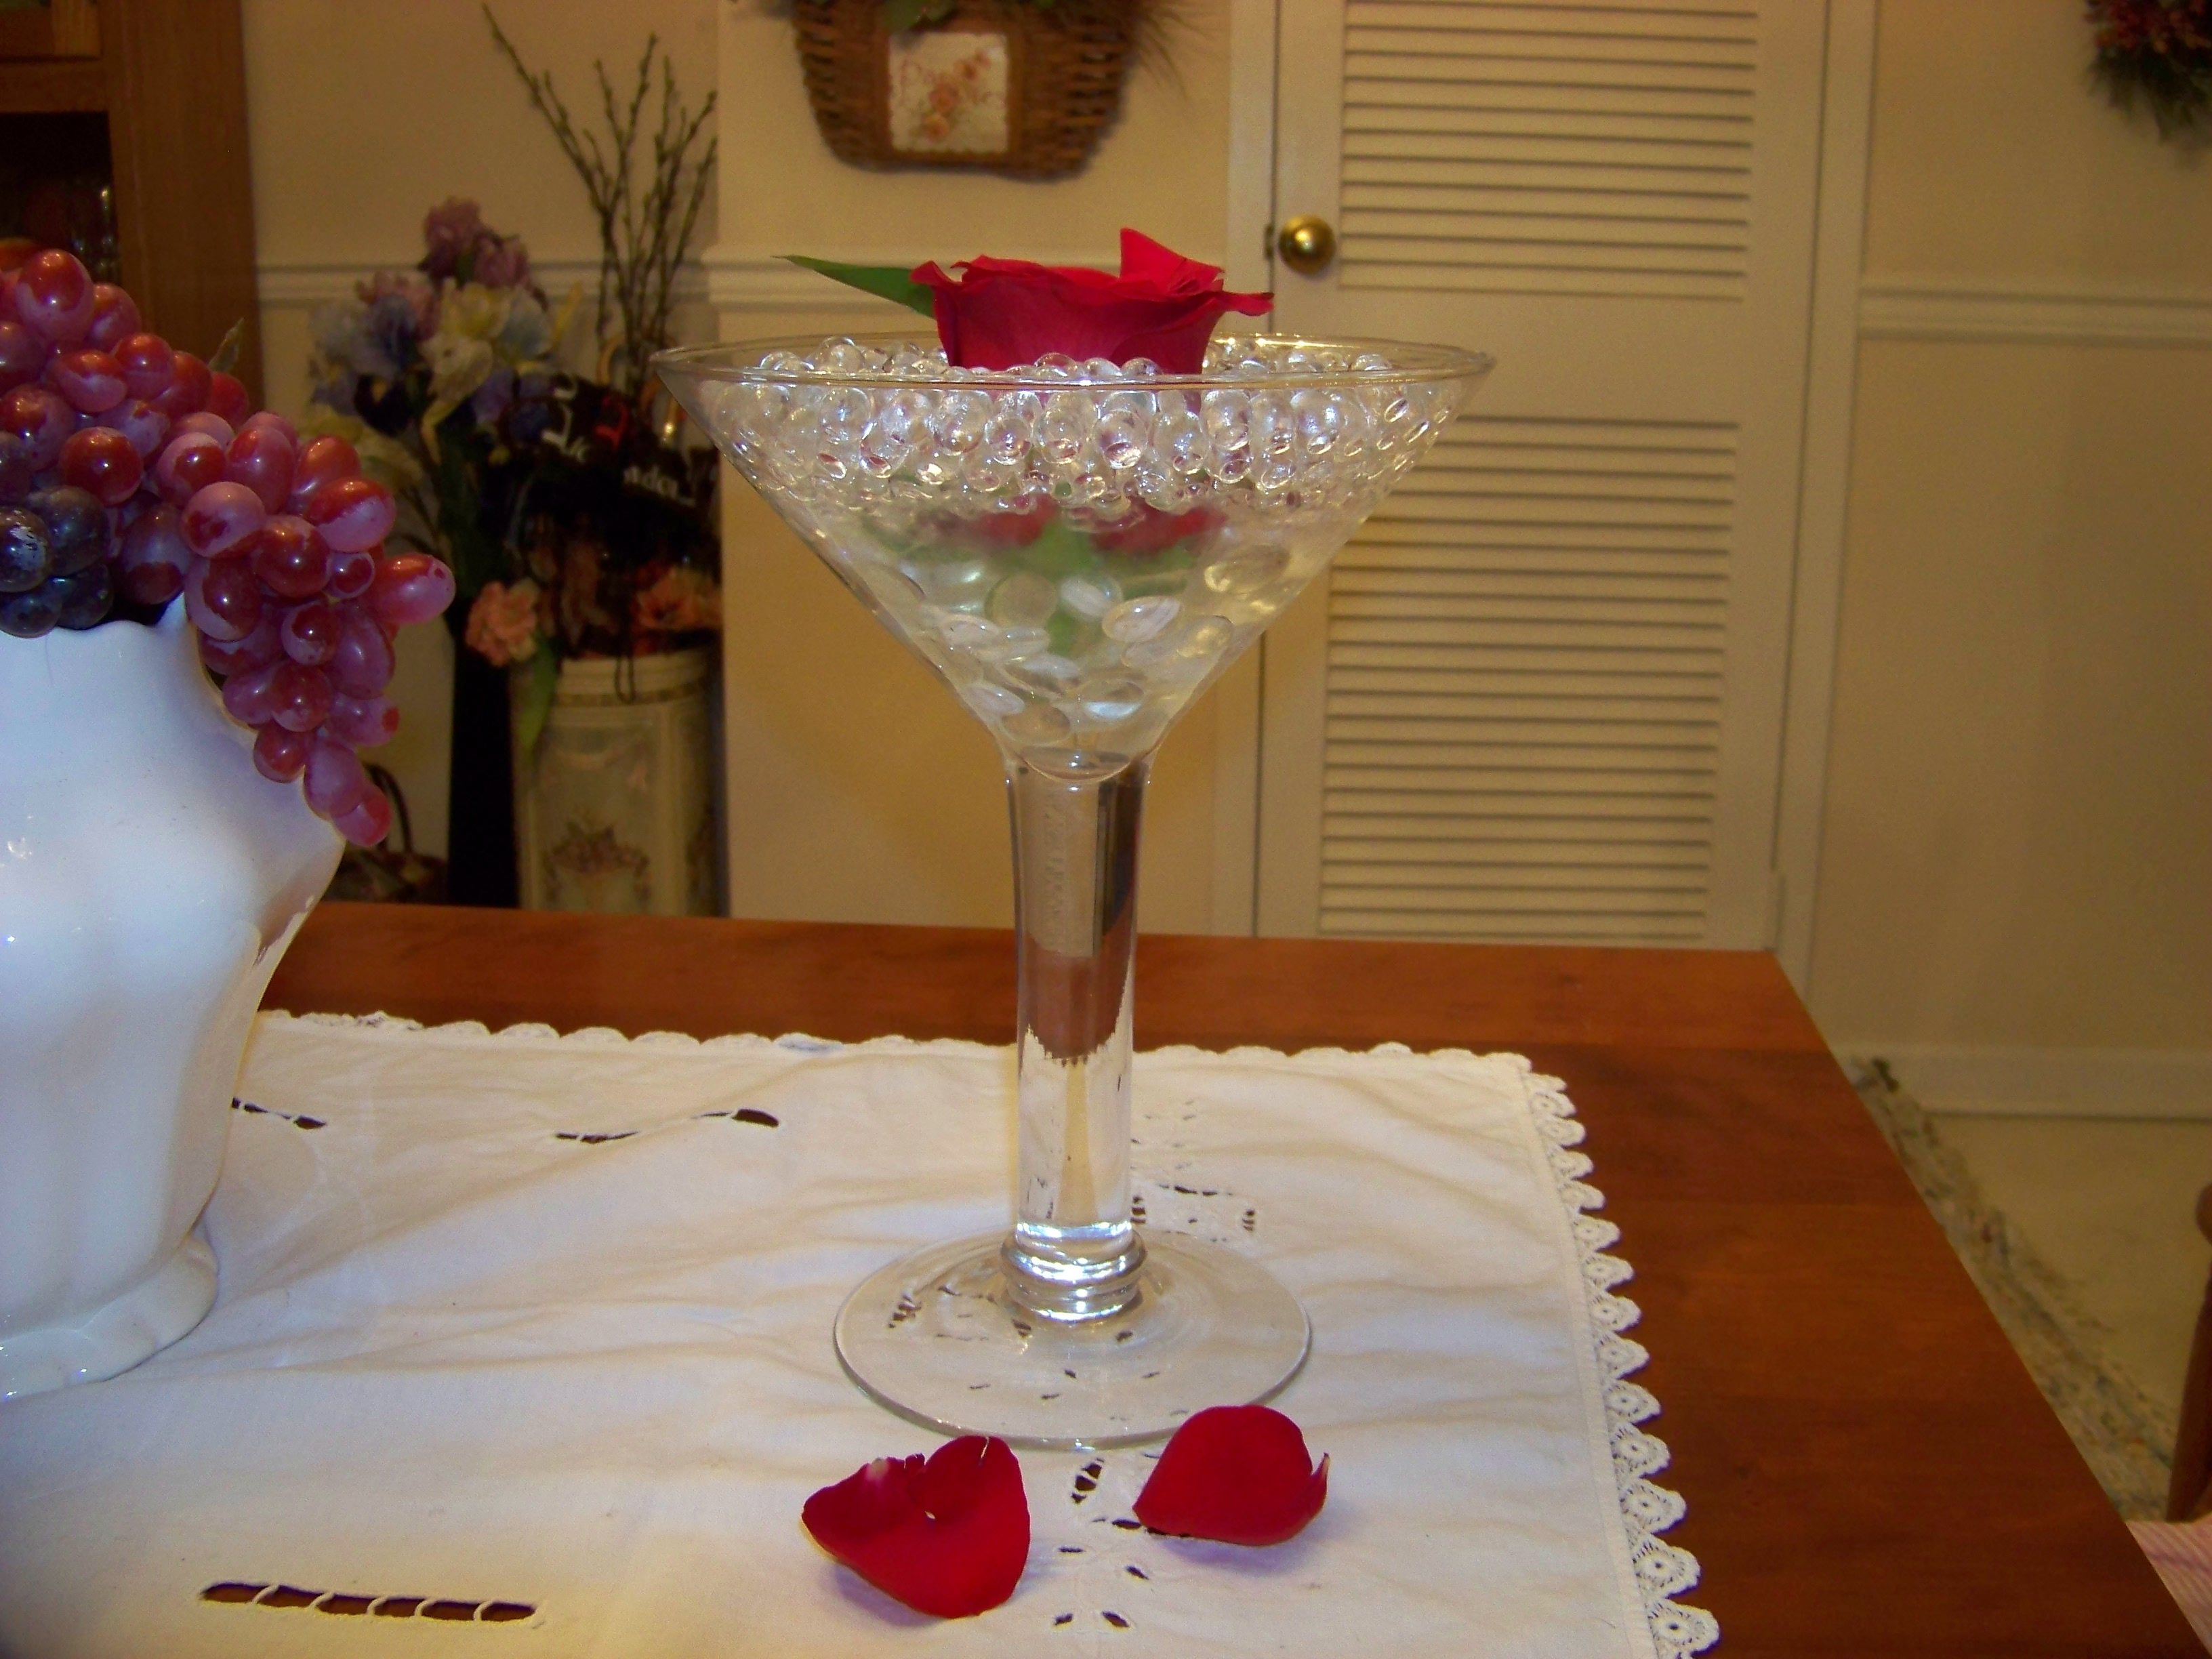 Martini glass filled with crystals and open rose